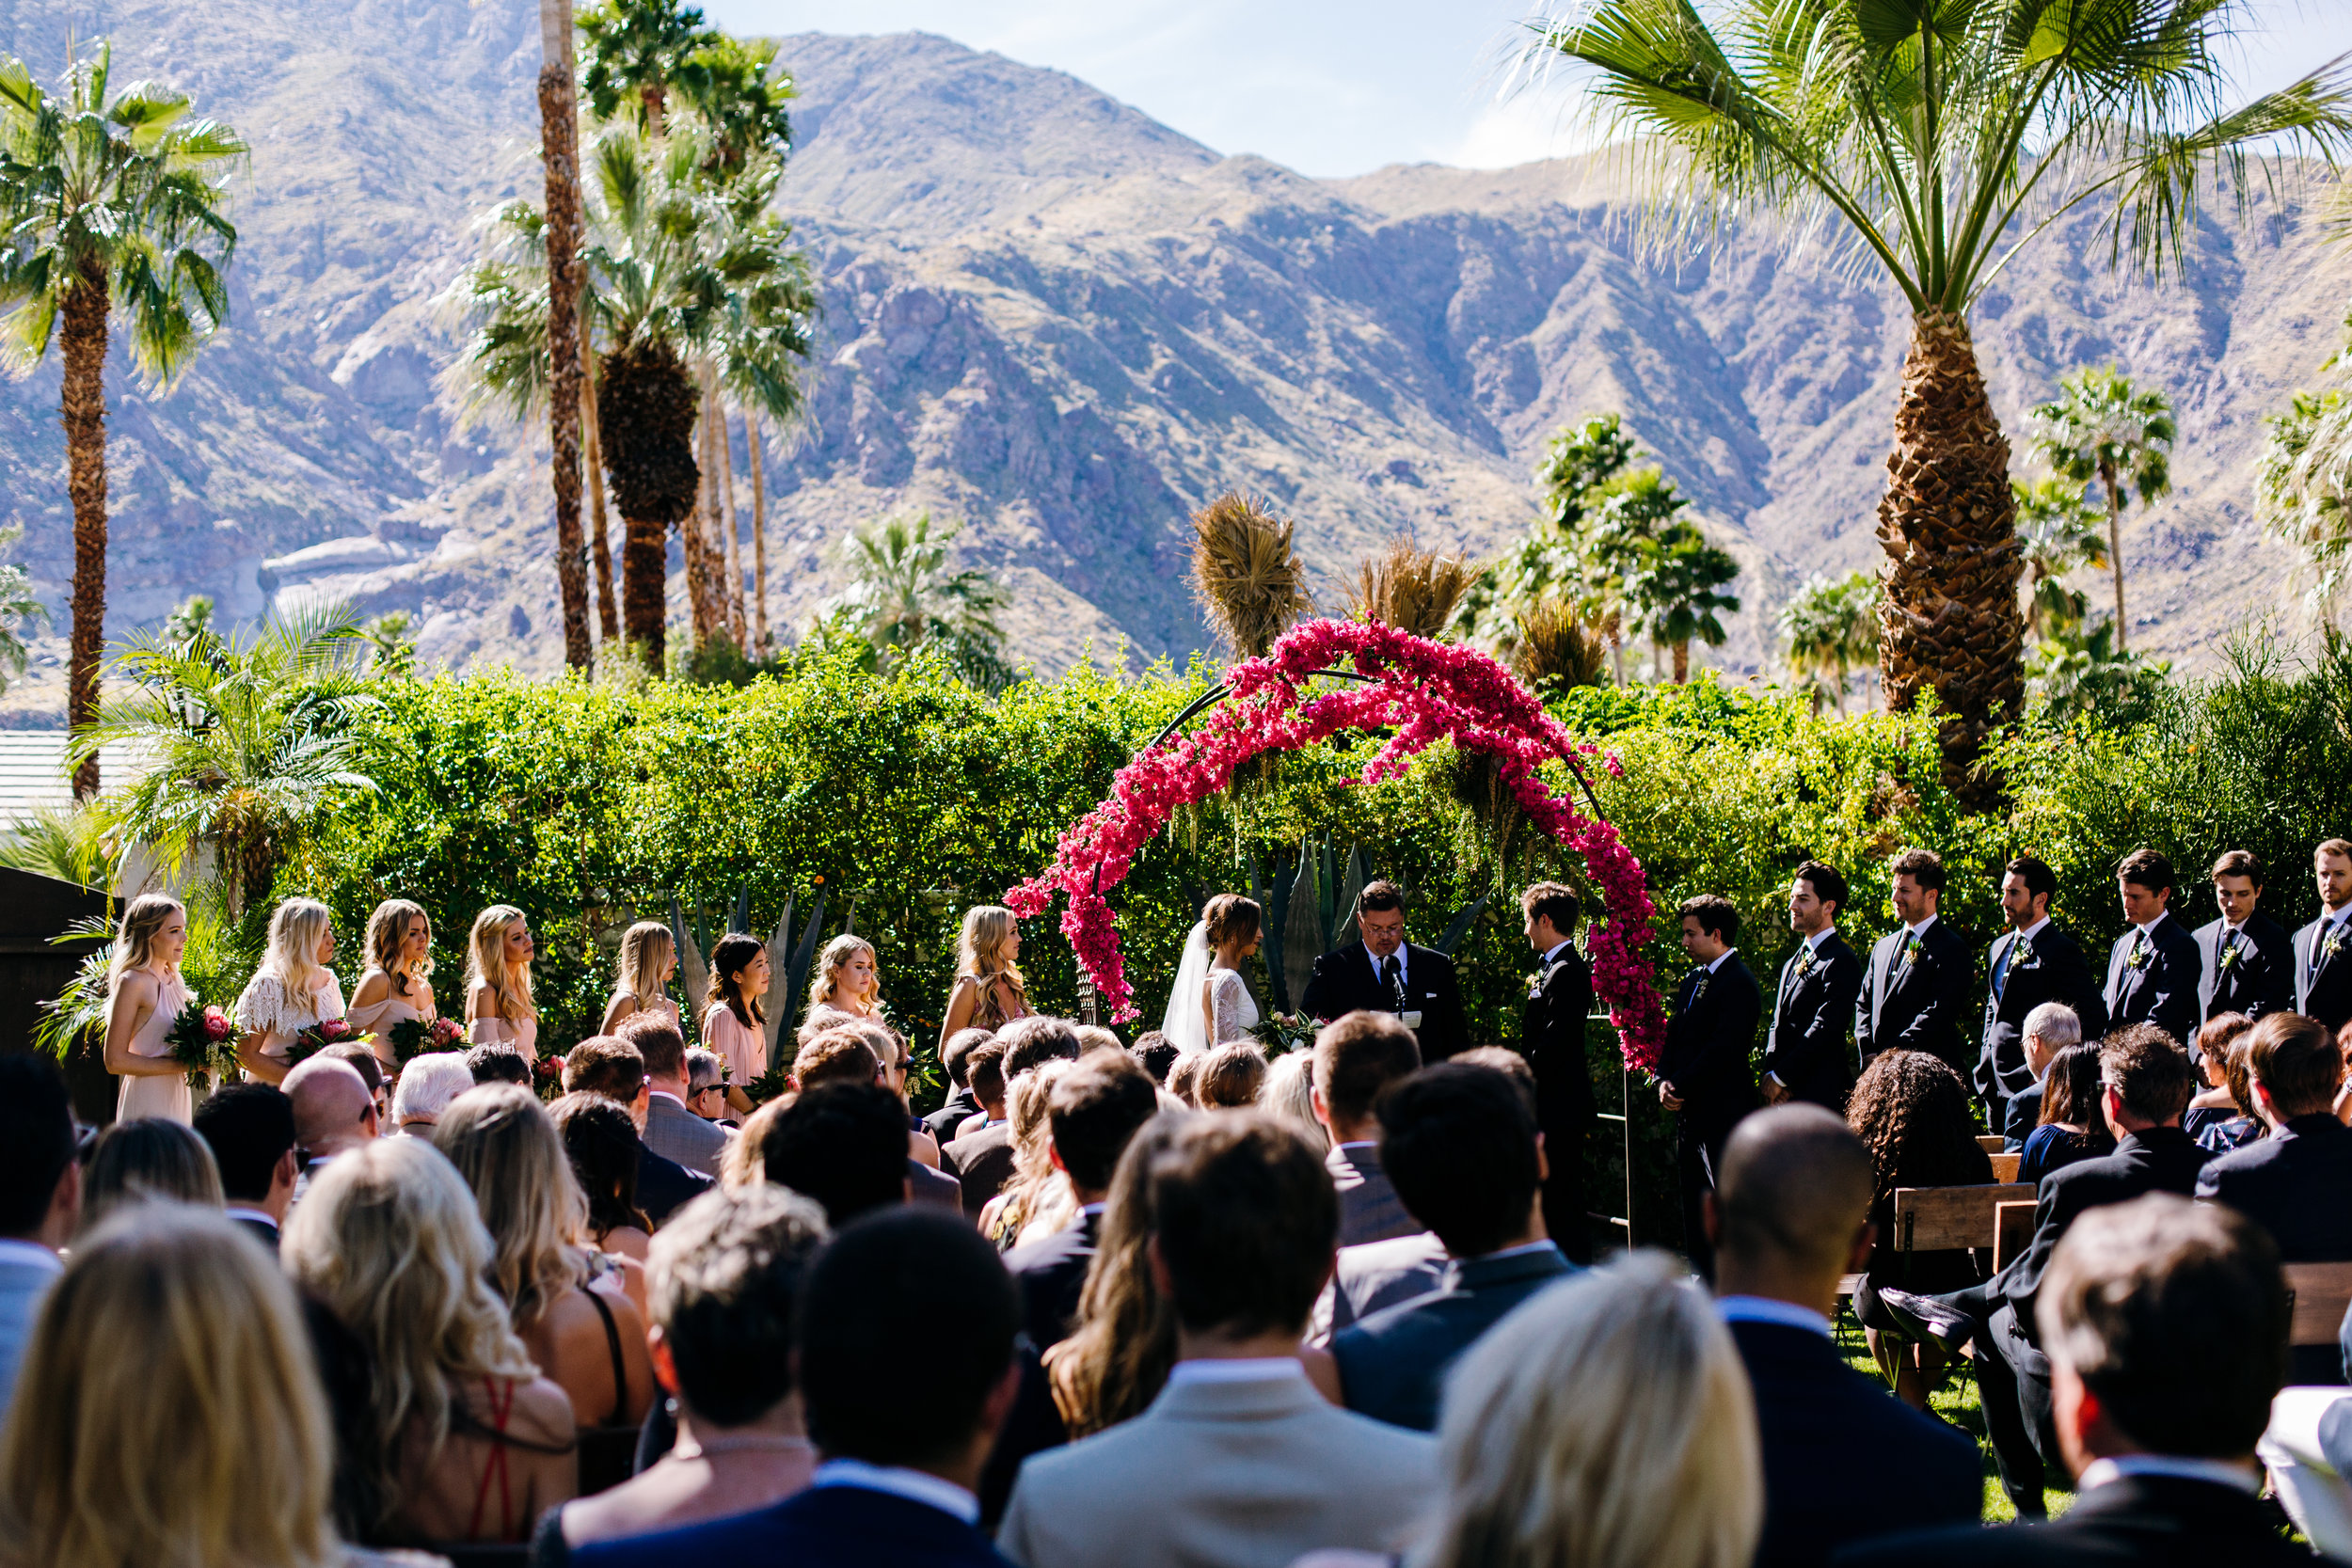 KaraNixonWeddings-PalmSprings-Wedding-48.jpg